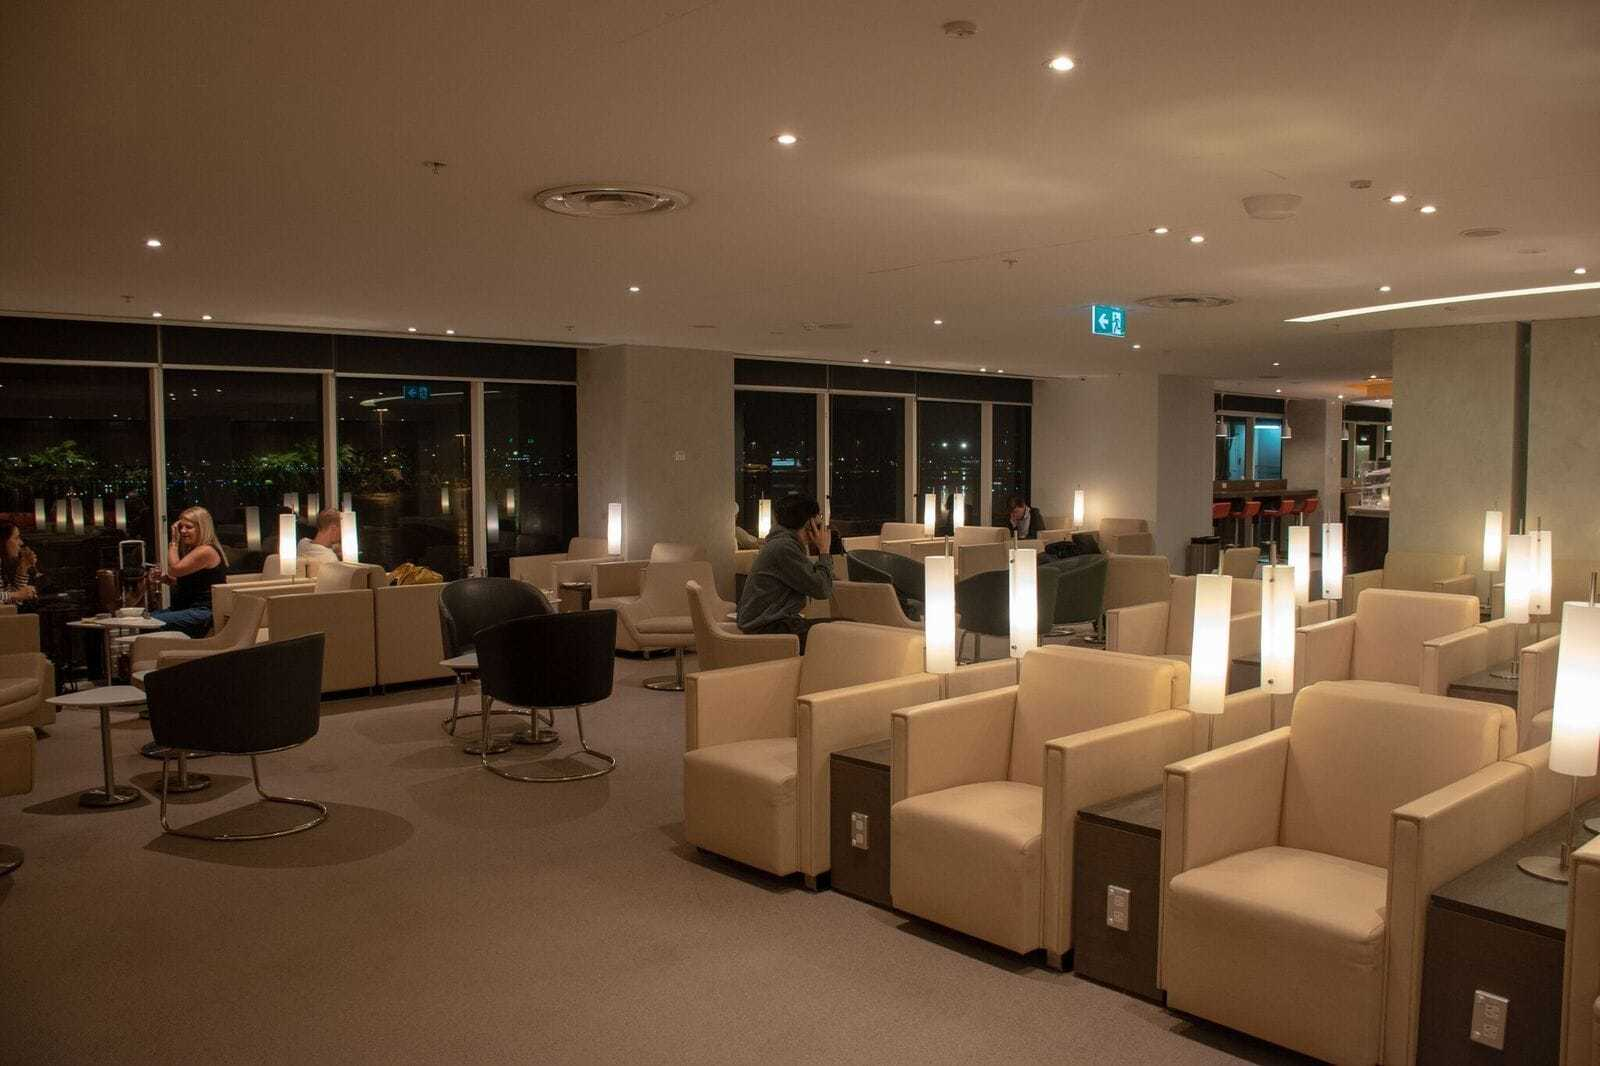 Lounge Sydney Review A Look At The Skyteam Sydney Lounge The Champagne Mile